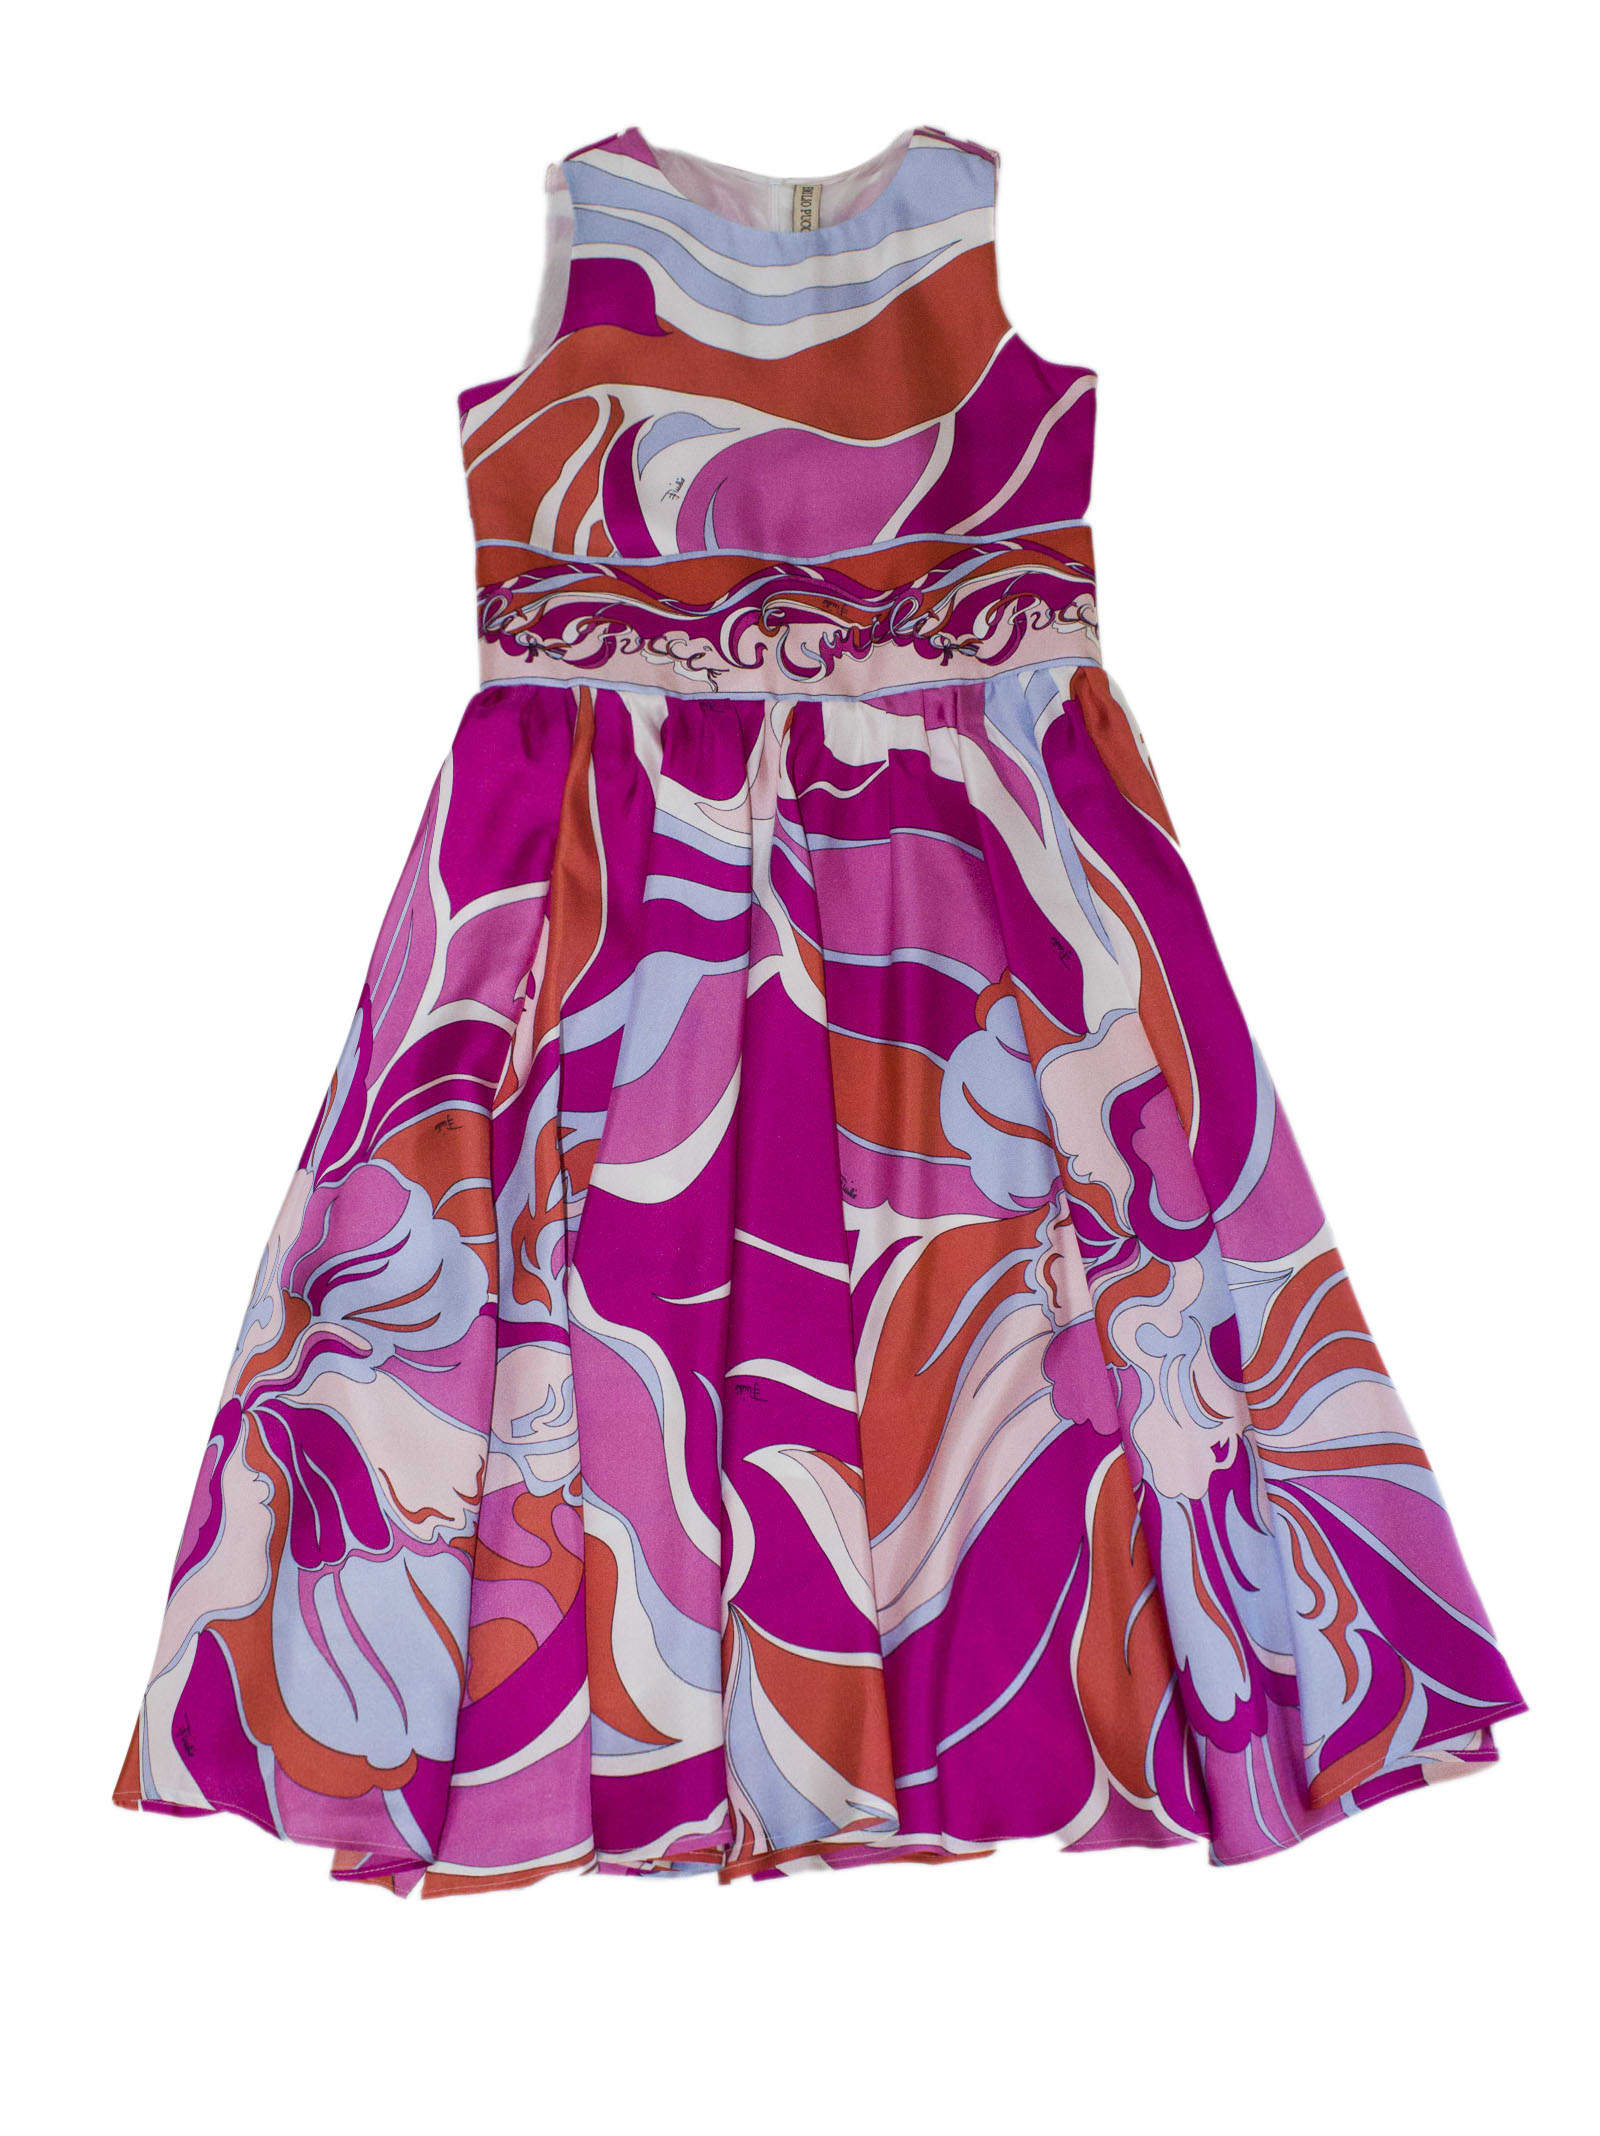 Emilio Pucci Multicolor Silk Dress